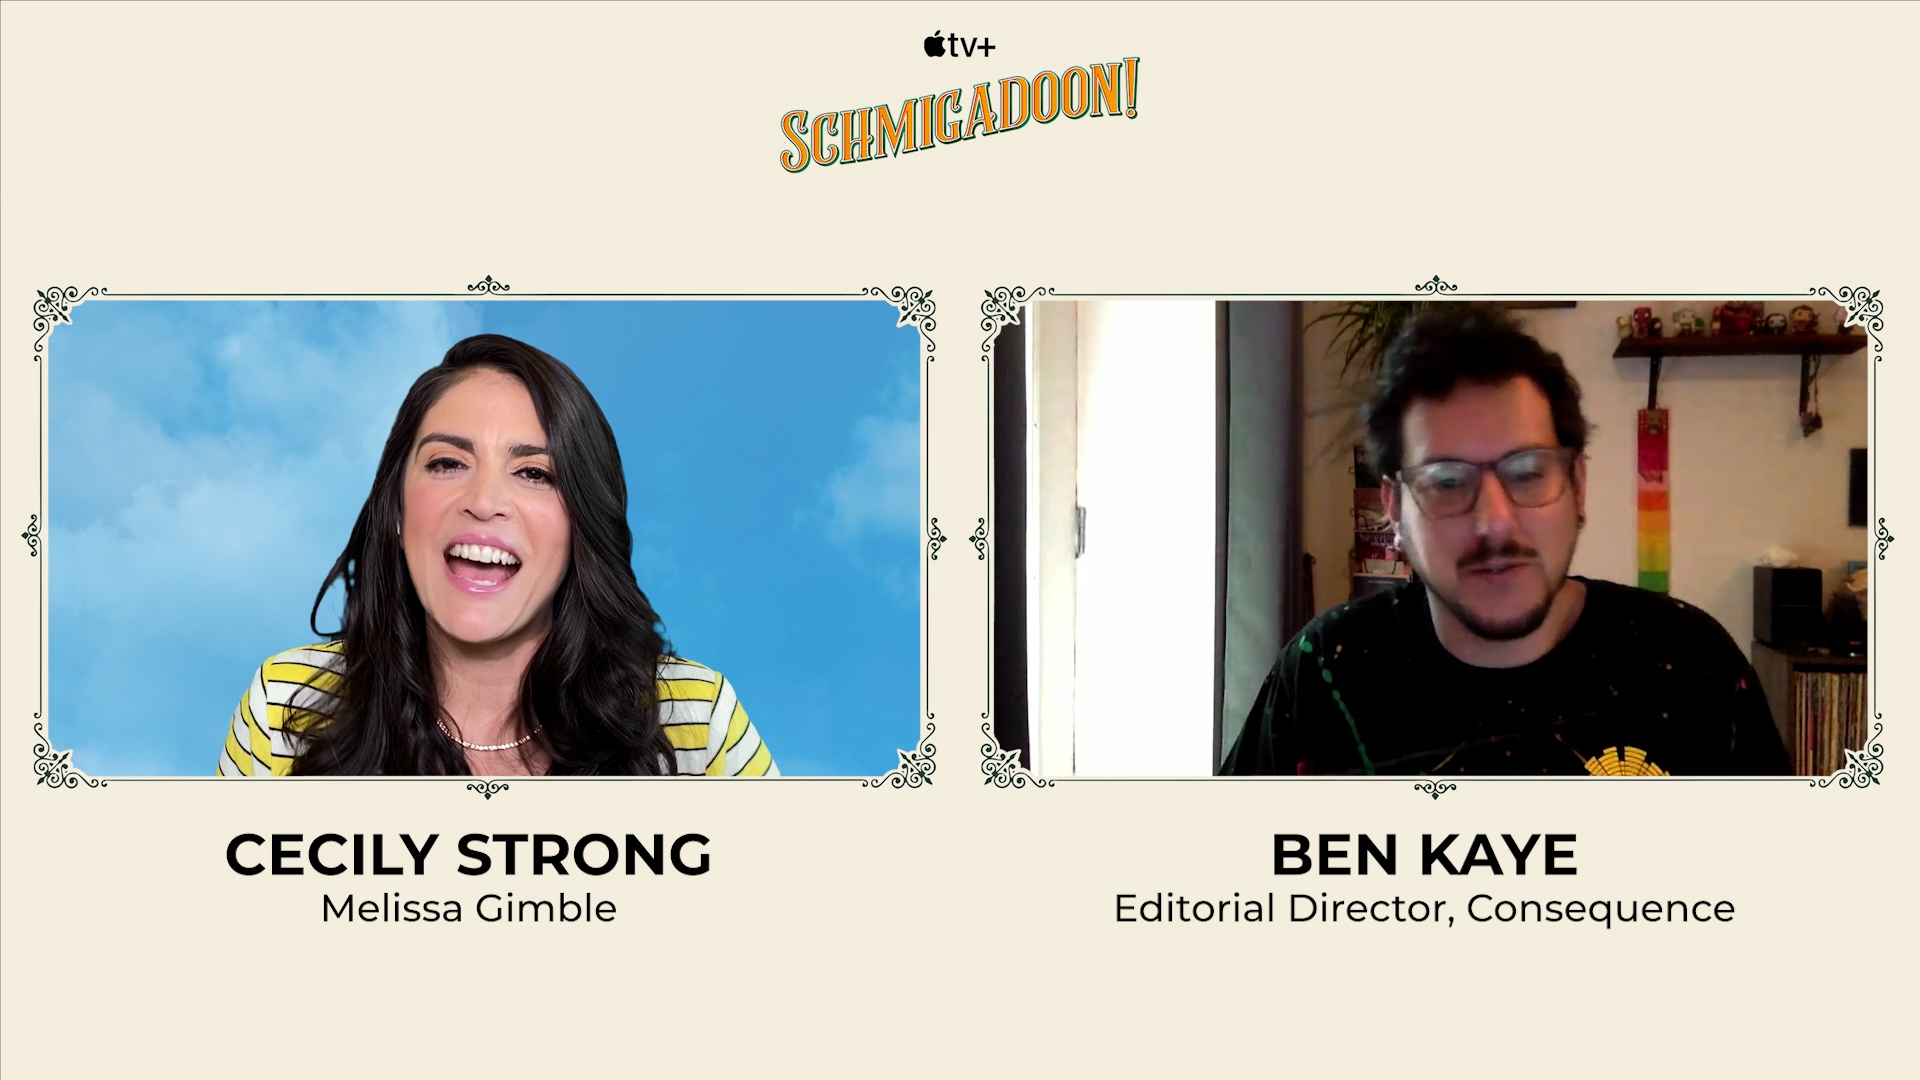 Cecily Strong and Barry Sonnenfeld on the Apple TV+ Musical Series Schmigadoon!